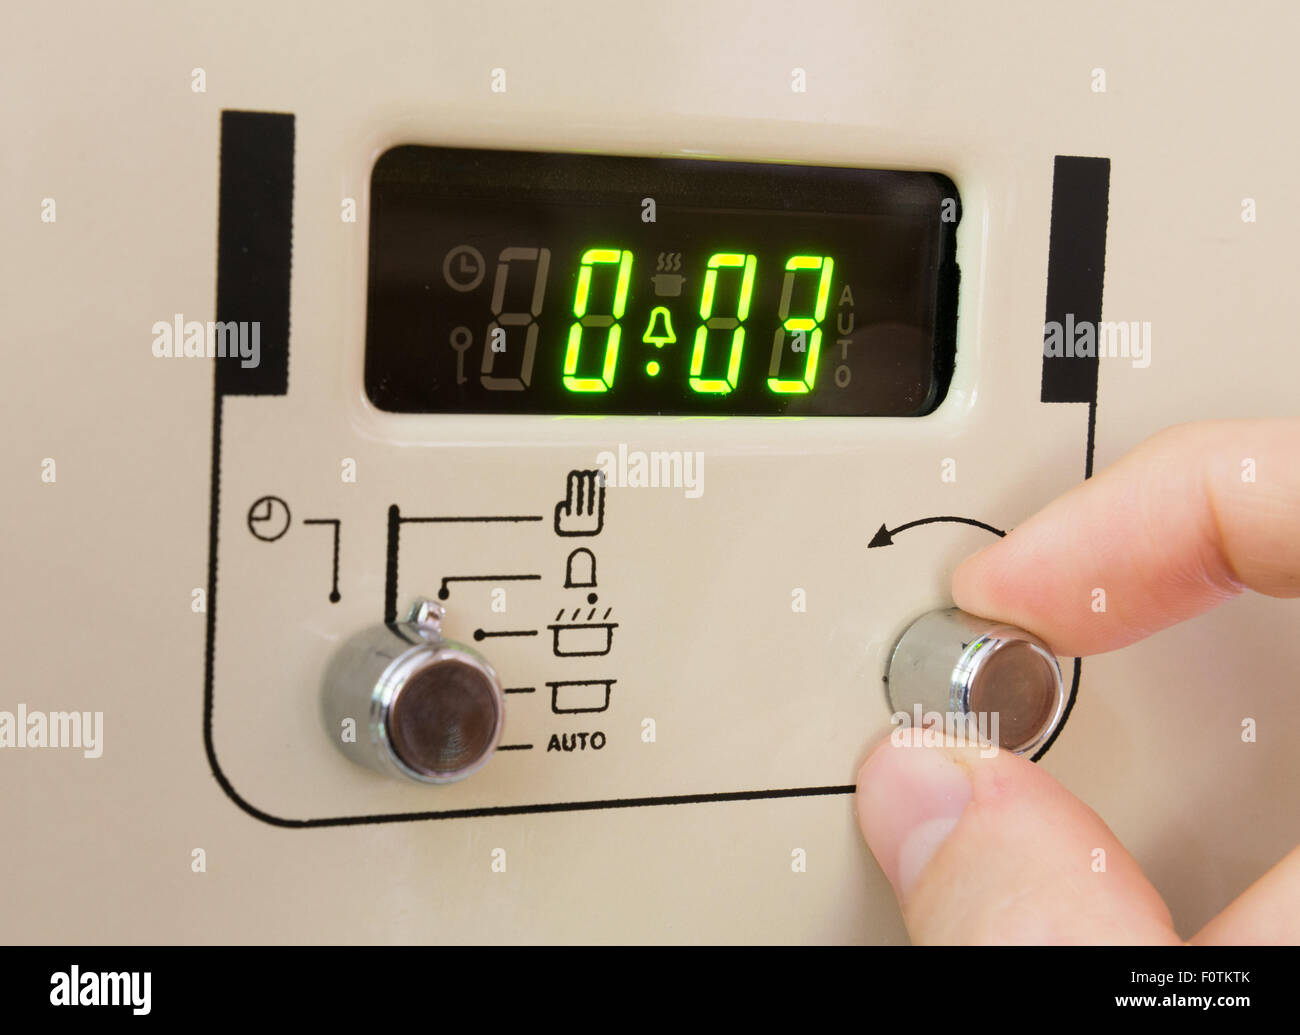 three minute timer stock photos three minute timer stock images